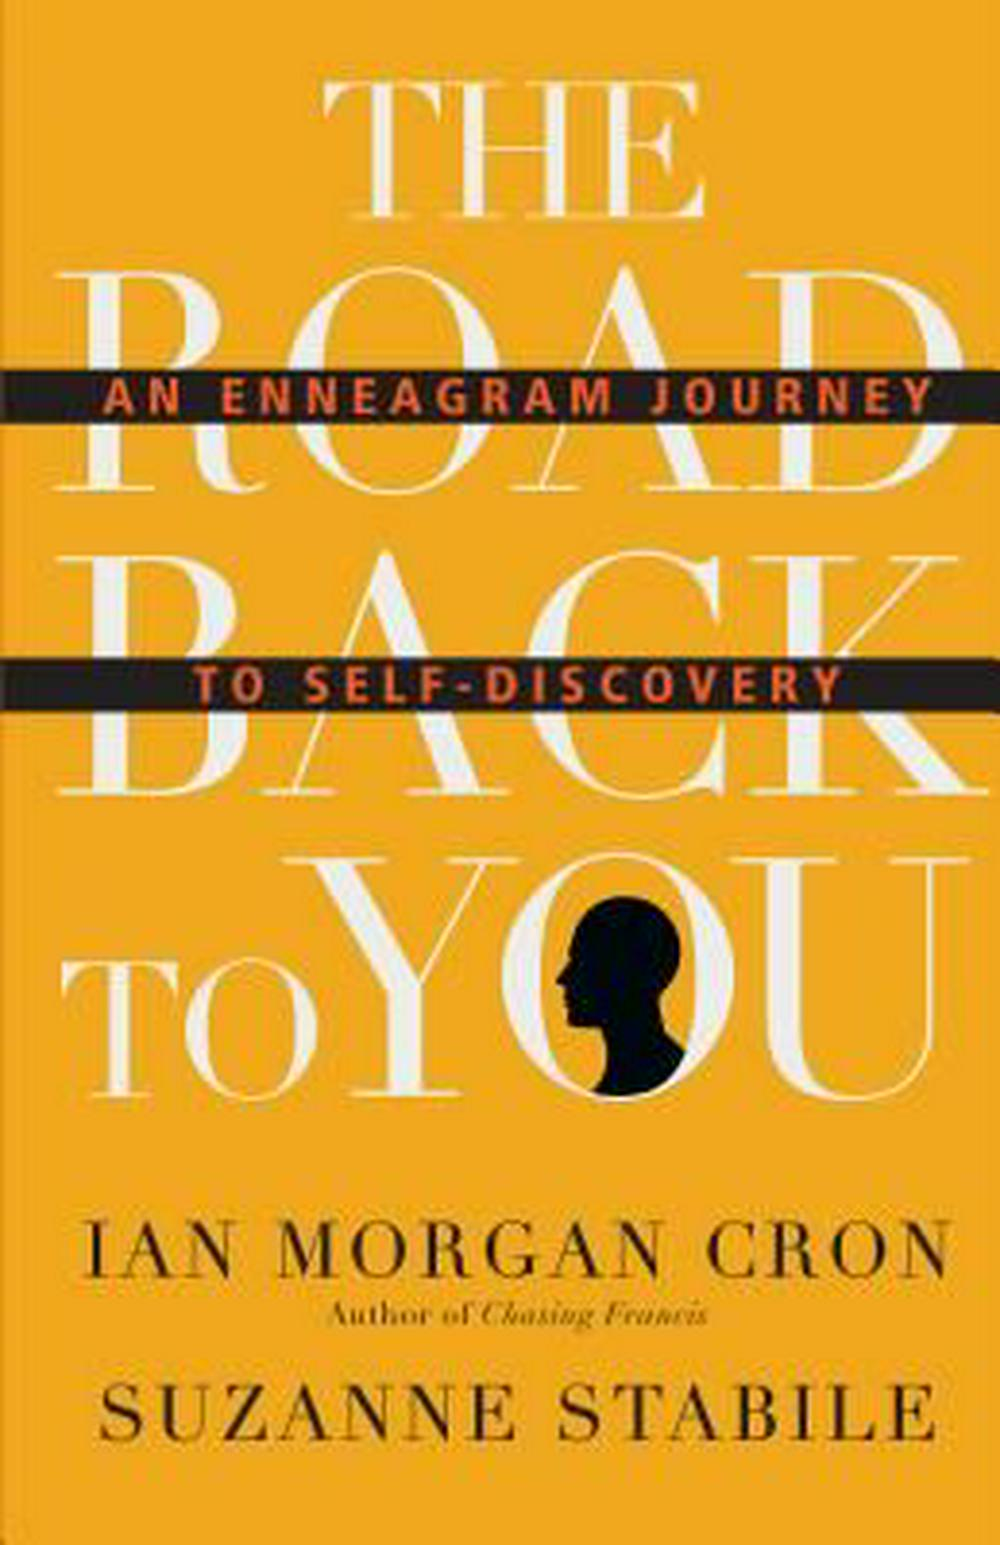 The Road Back to You: An Enneagram Journey to Self-Discovery by Ian Morgan Cron, Suzanne Stabile, ISBN: 9780830846191